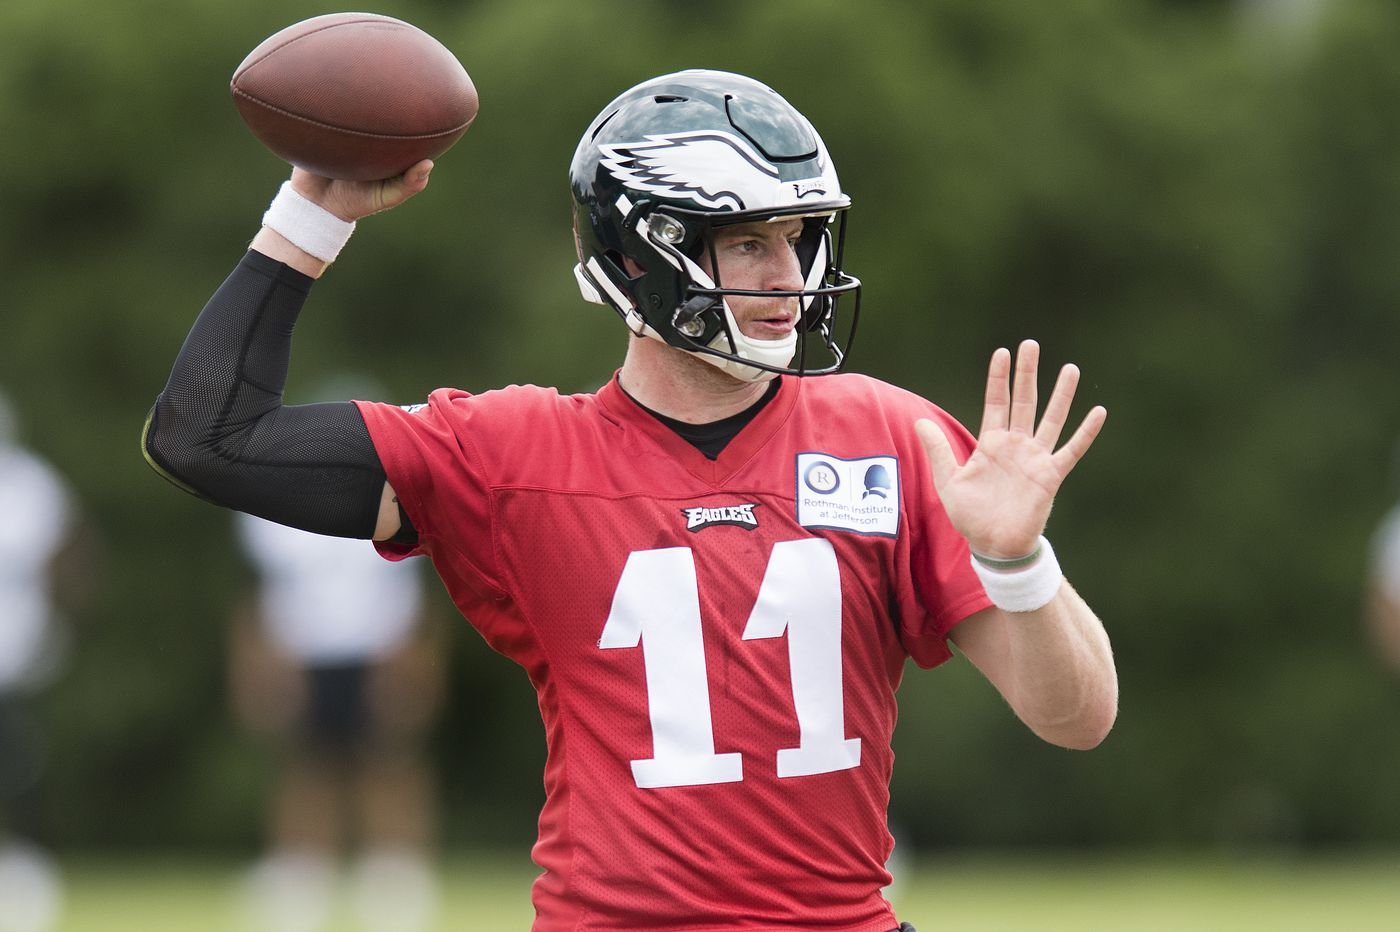 Carson Wentz's velocity is the best indicator of the Eagles QB's remarkable progress